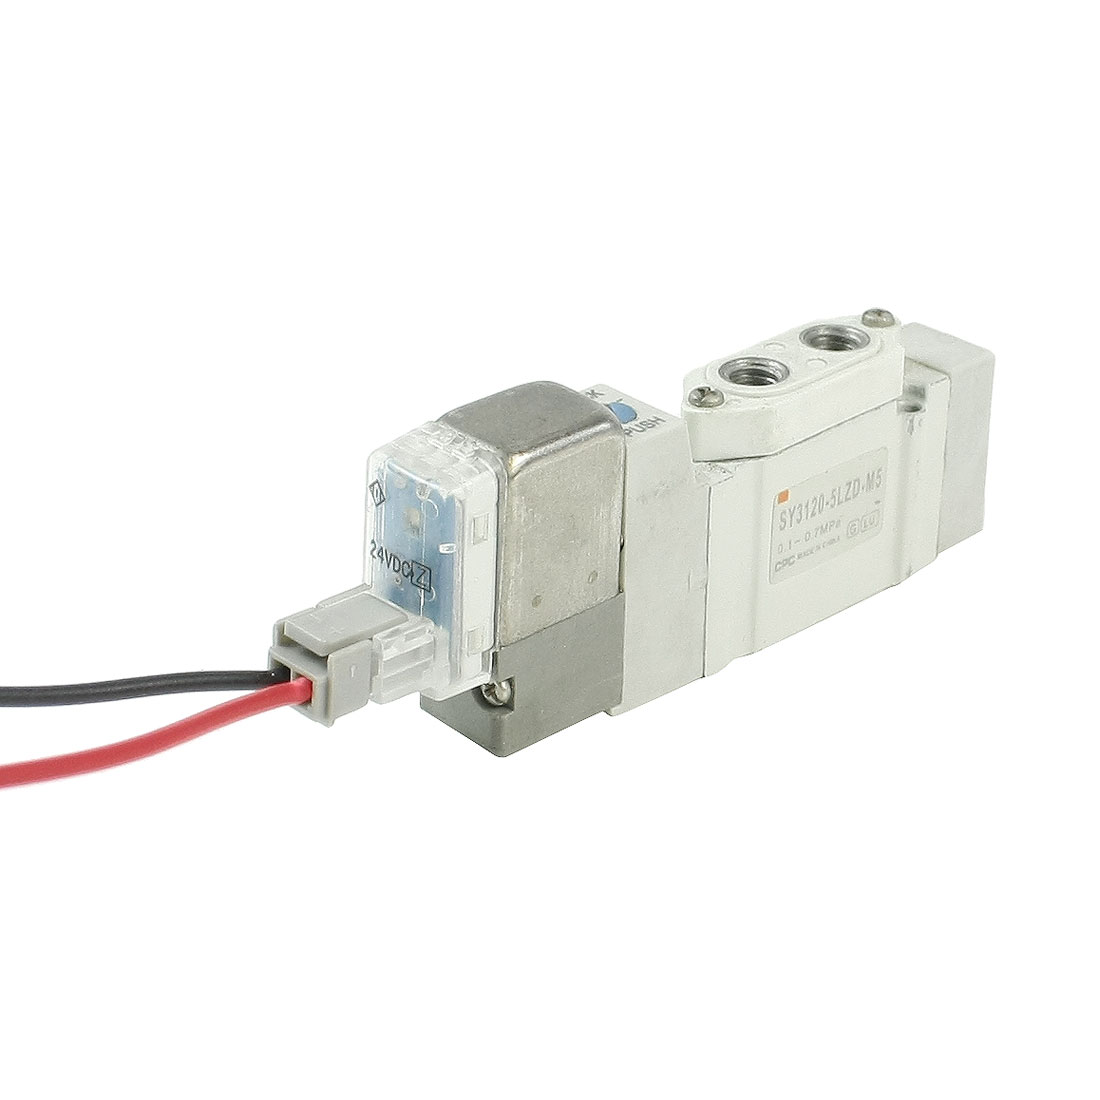 DC 24V 2 Positions 5 Port Solenoid Operated Valve SY3120-5LZD-M5